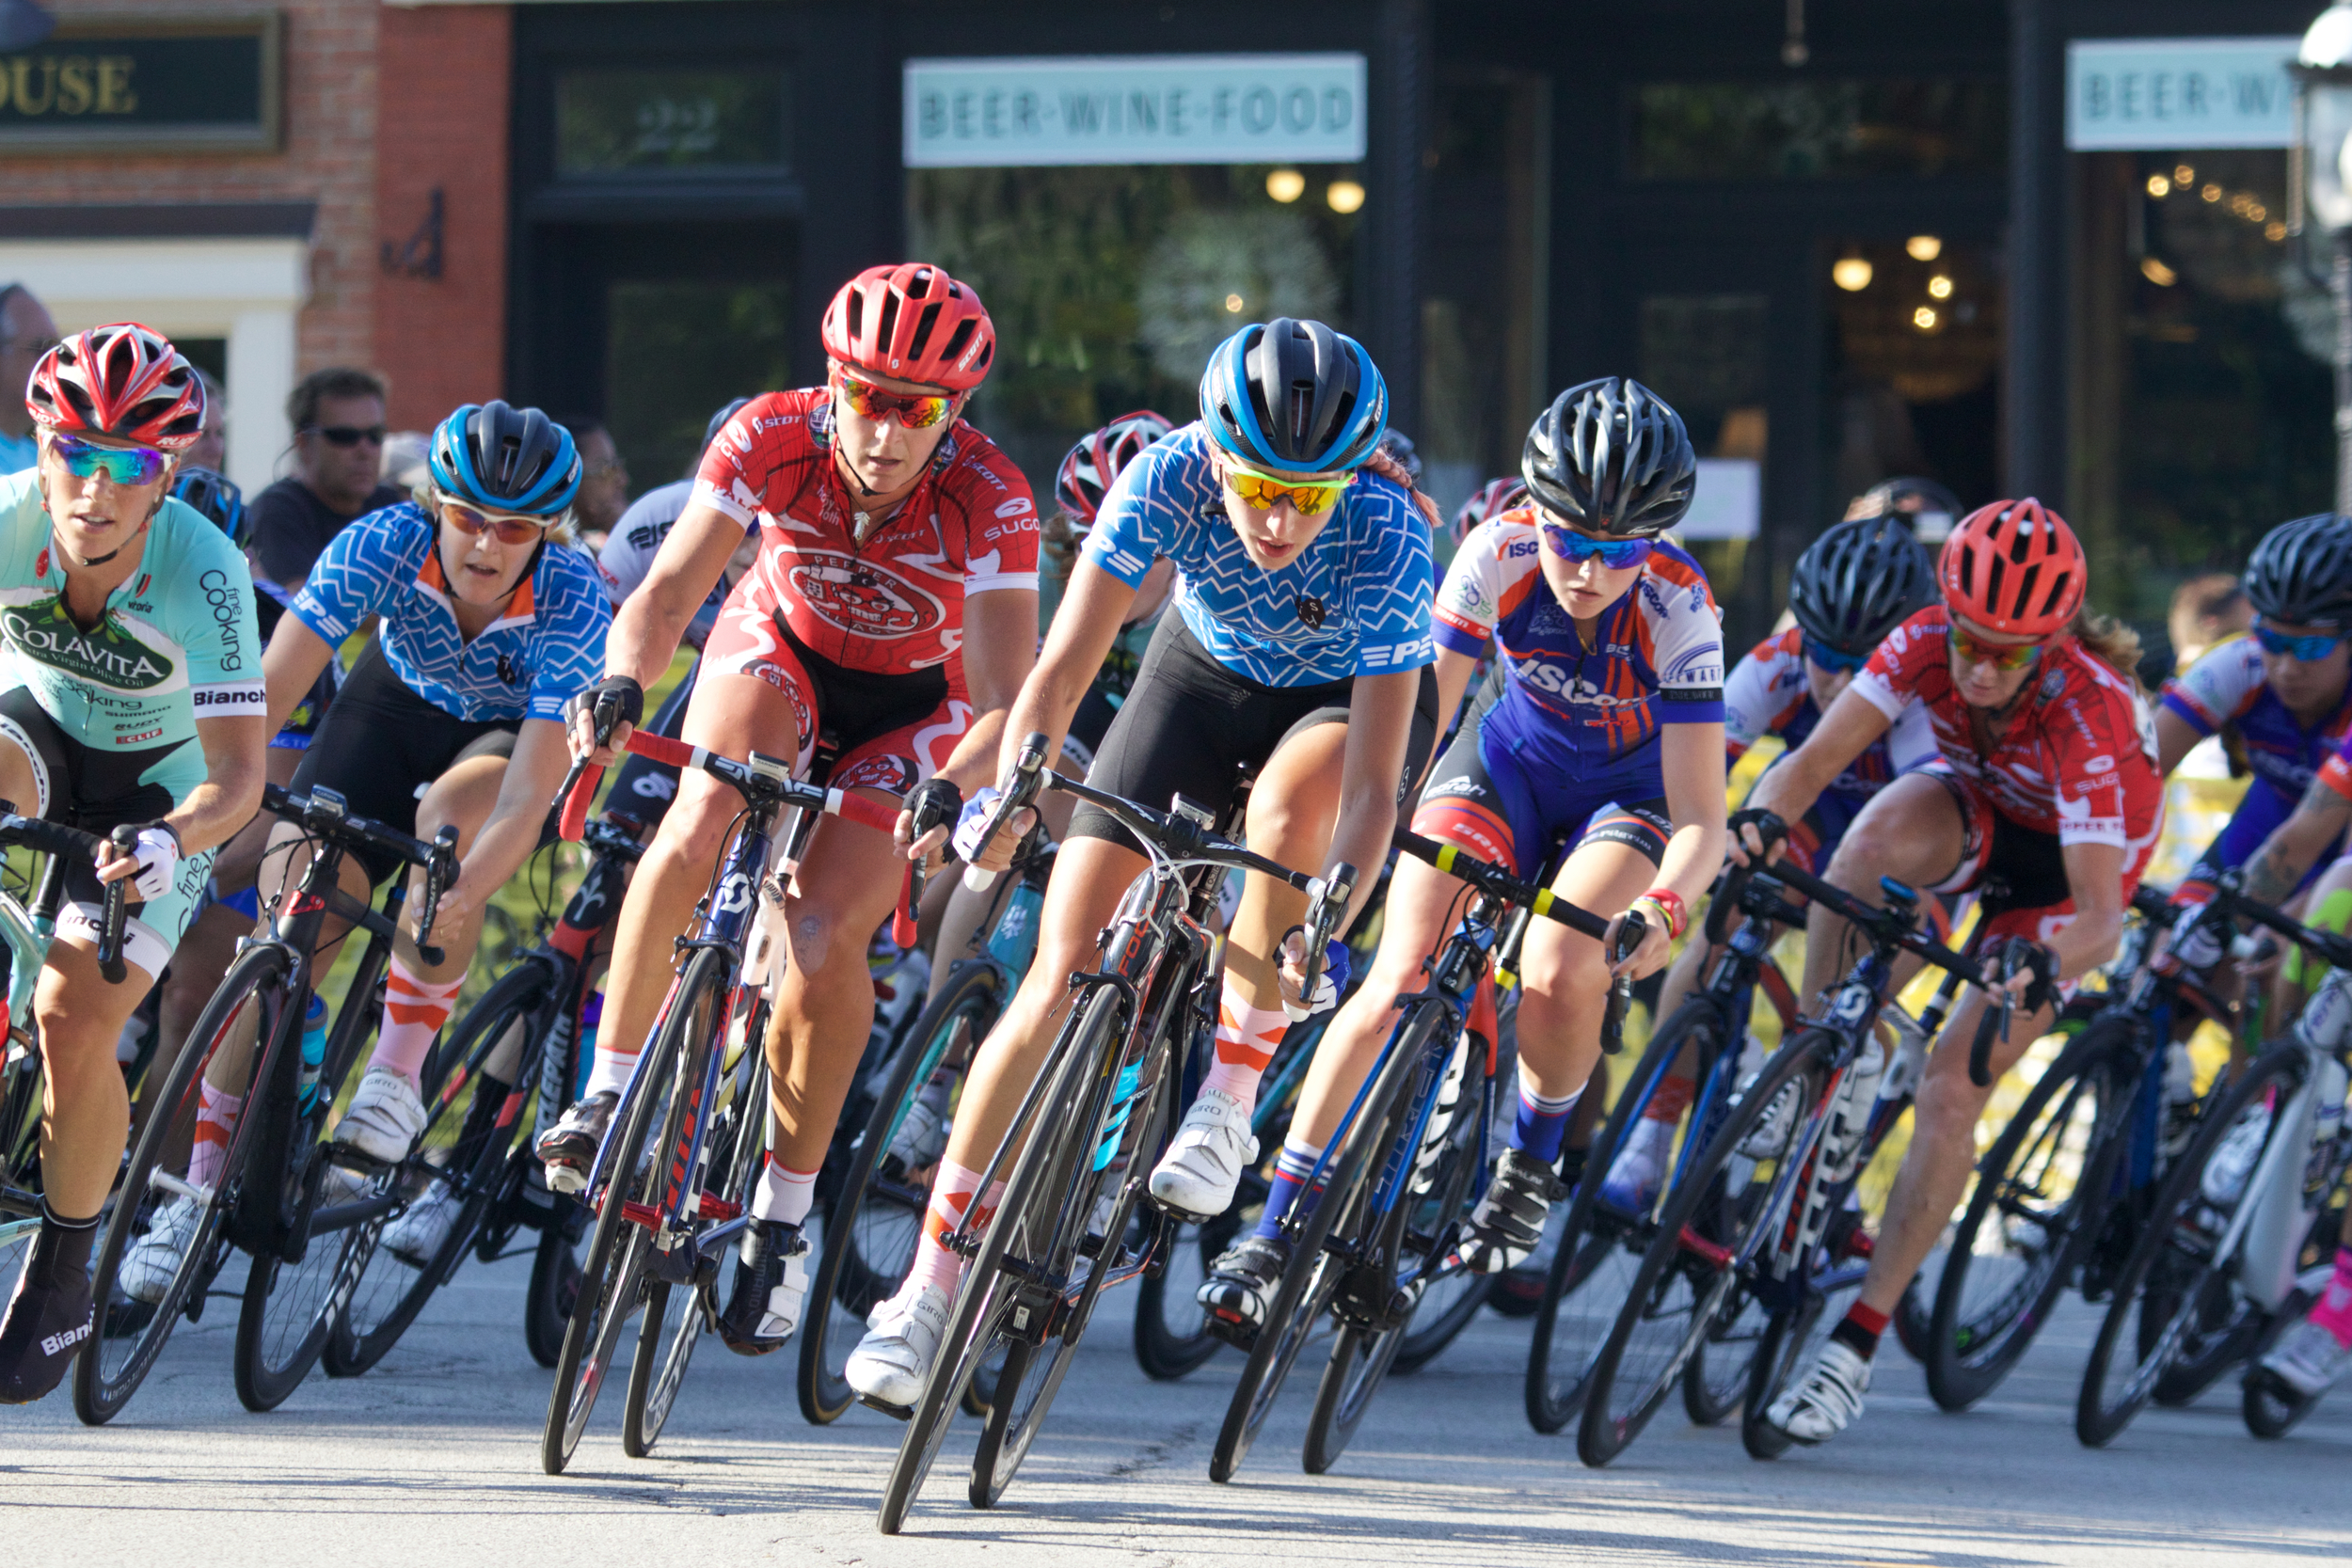 CWEC leads the pack at Lake Bluff Criterium, NCC